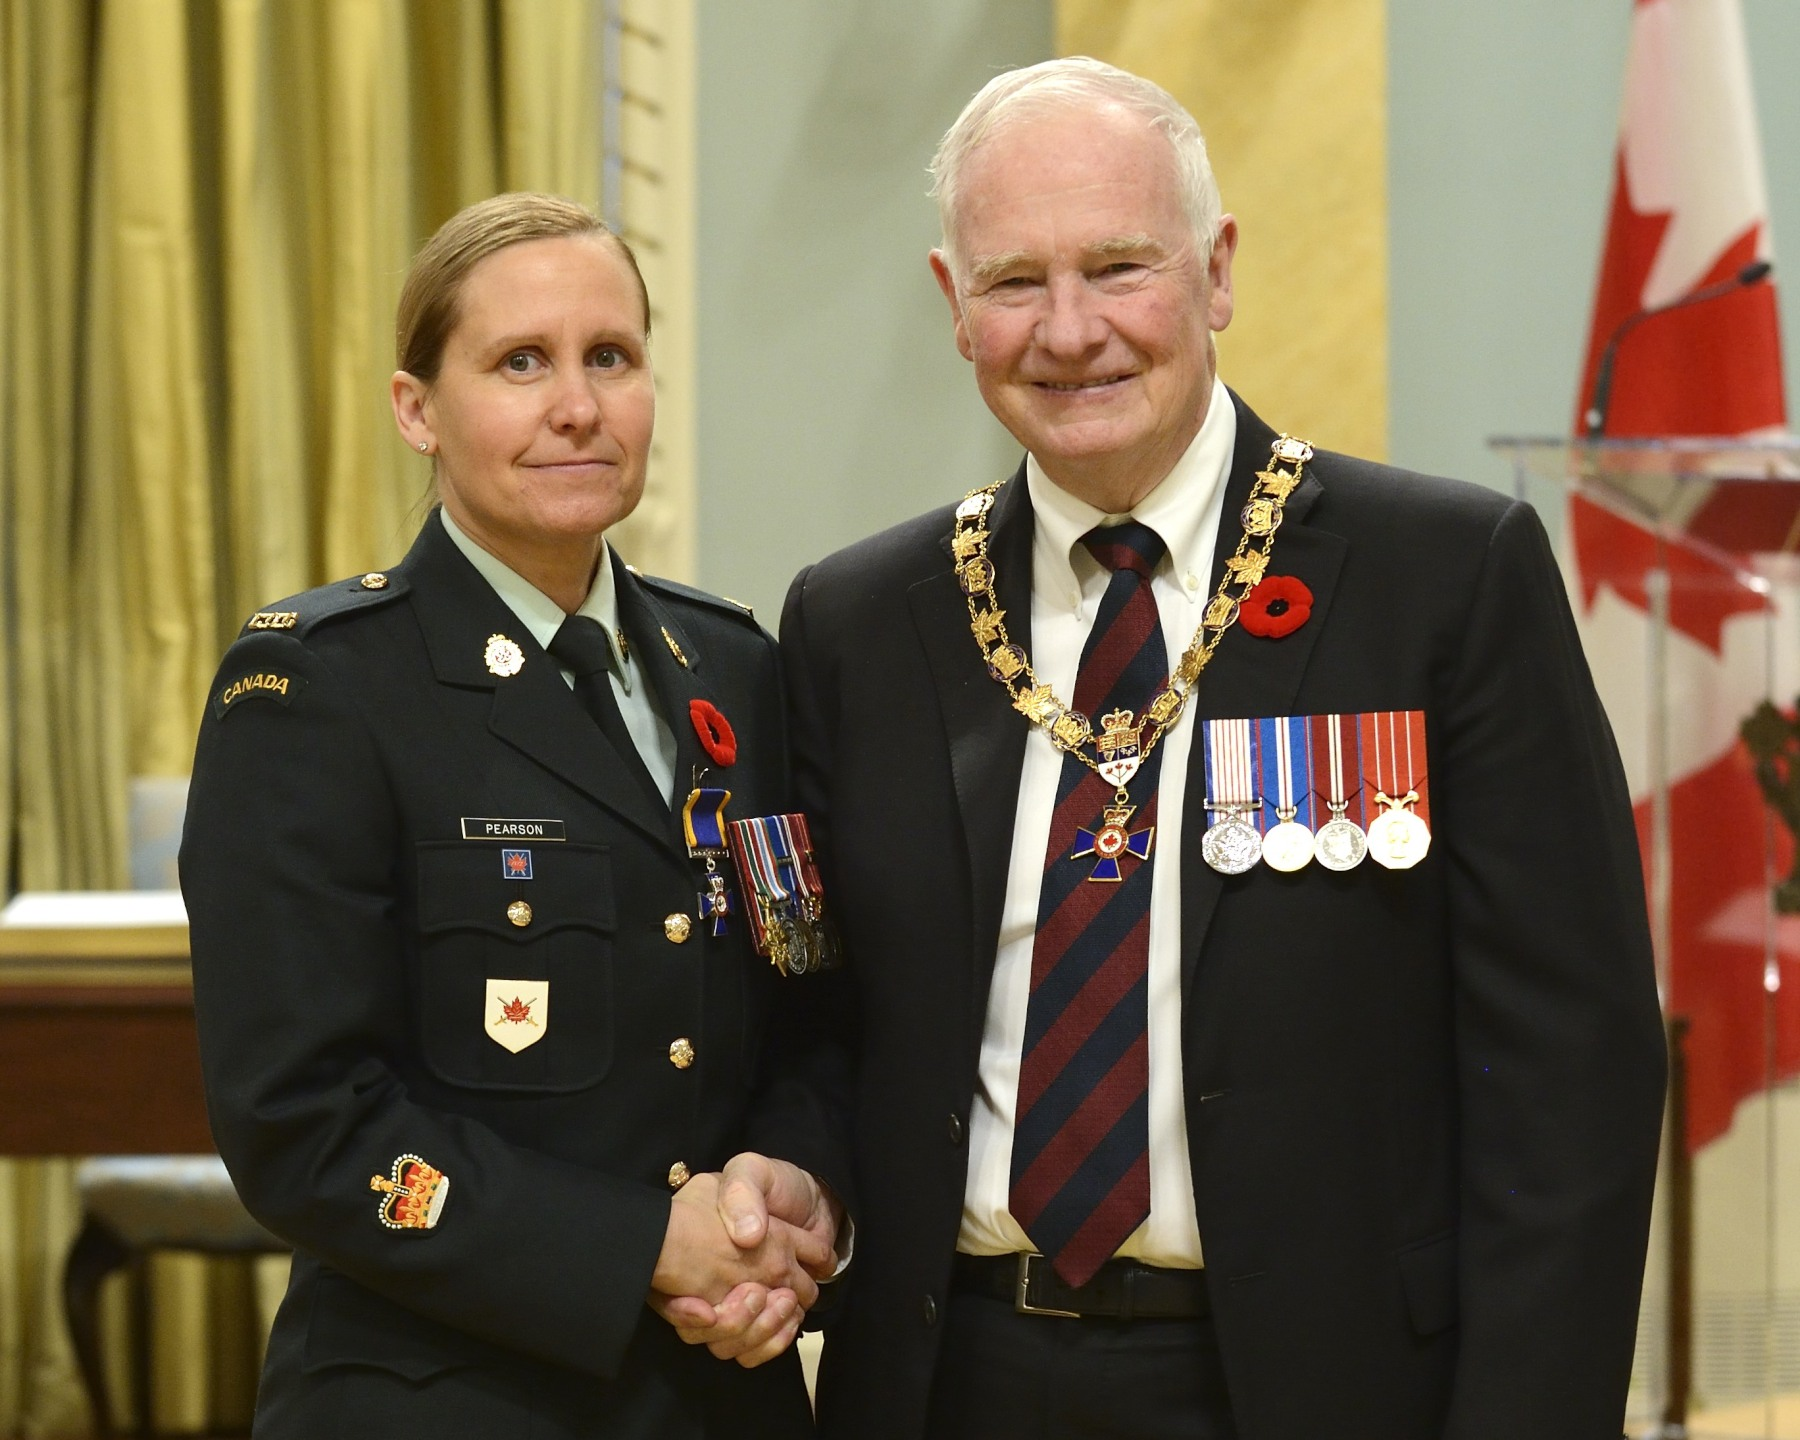 His Excellency presented the Order of Military Merit at the Member level (M.M.M.) to Warrant Officer Melinda Pearson, M.M.M., C.D., 32 Canadian Brigade Group Headquarters, Toronto, Ontario.